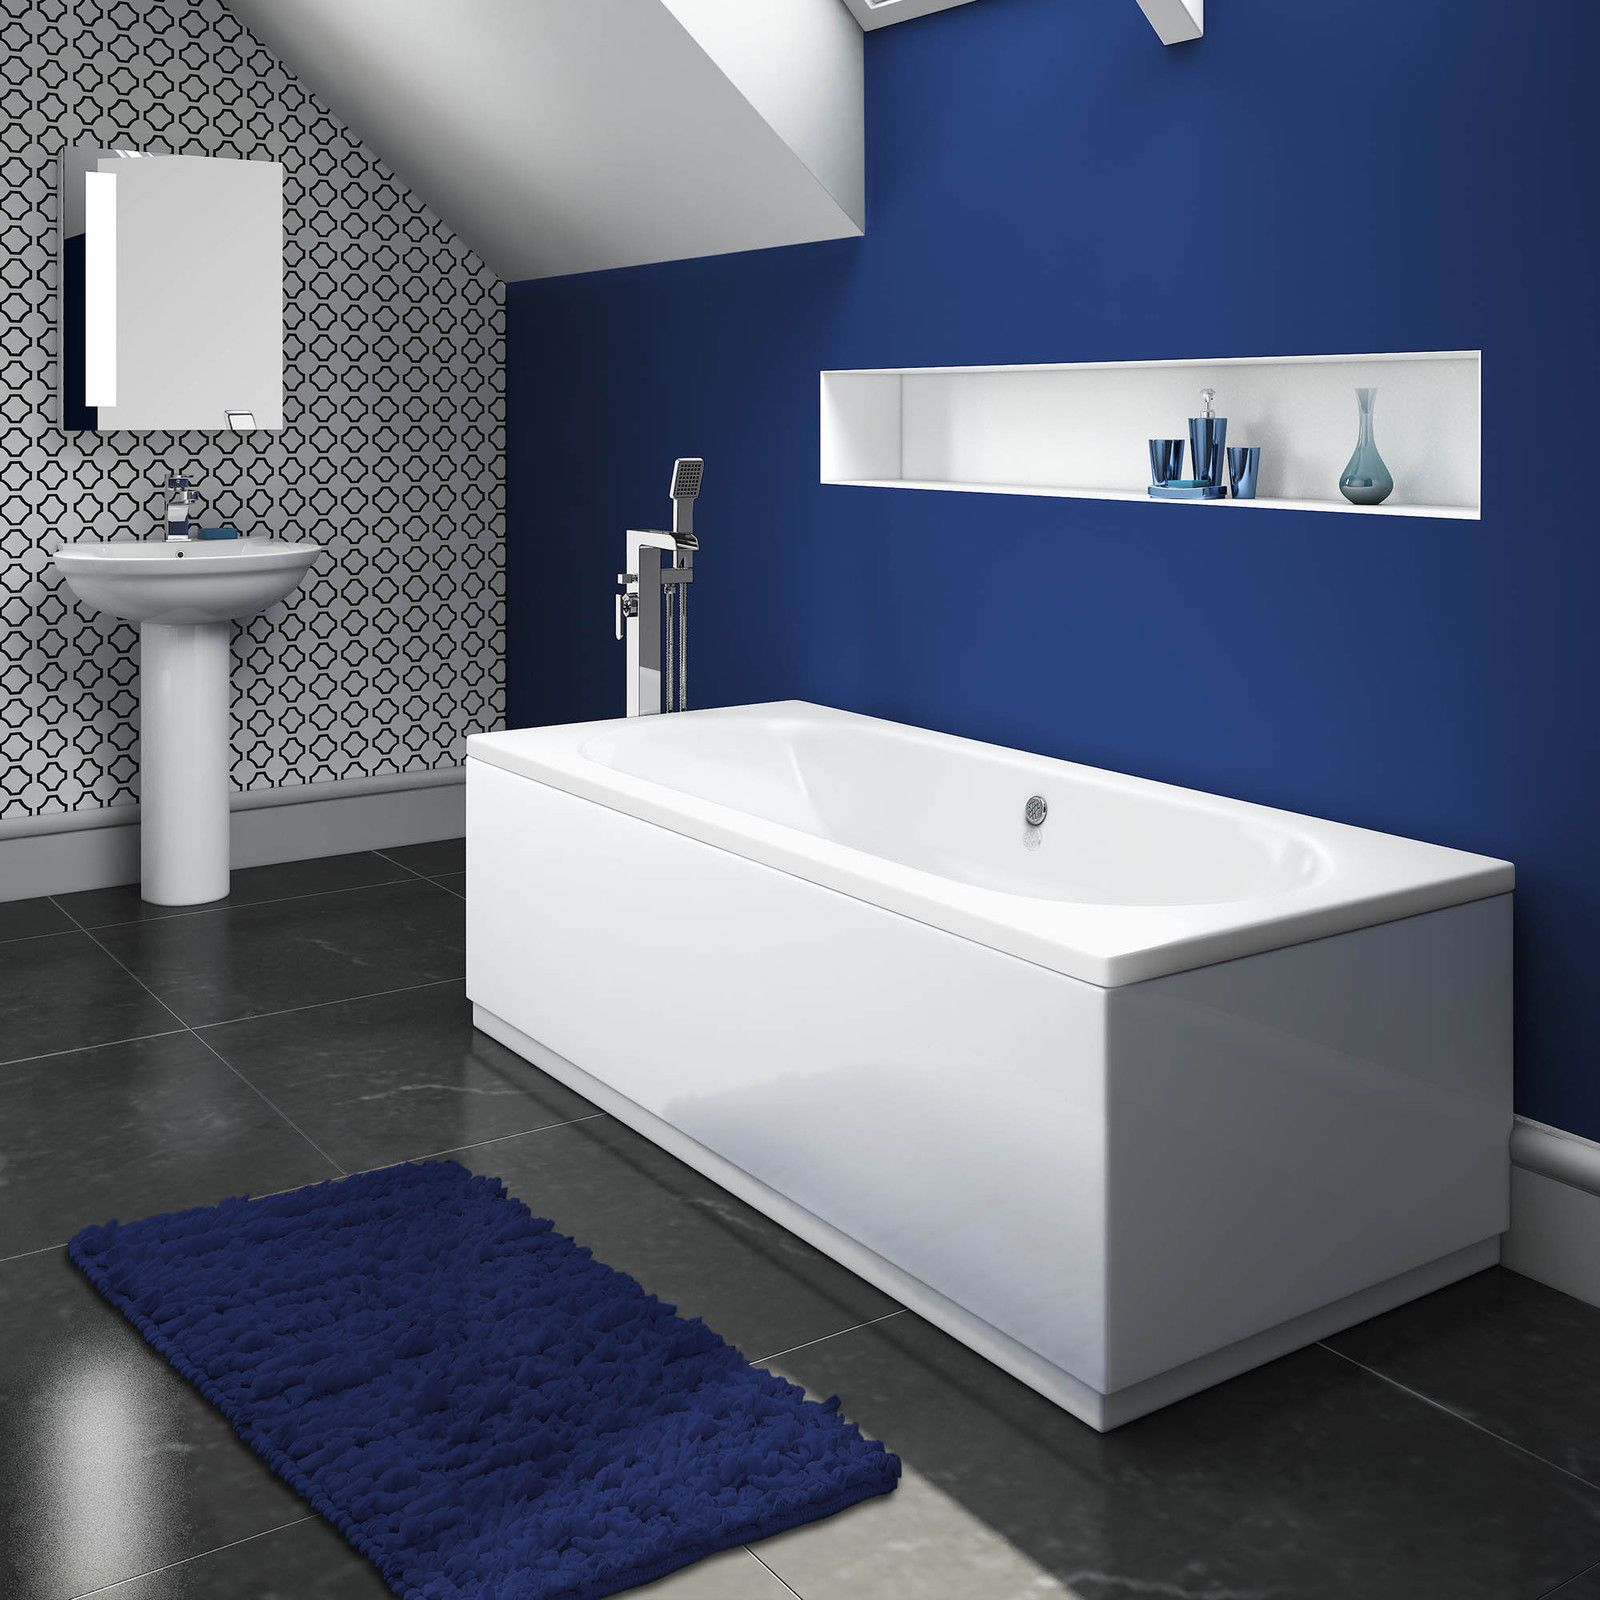 AquaSoak 1700 x 700 Double Ended Straight Bath round